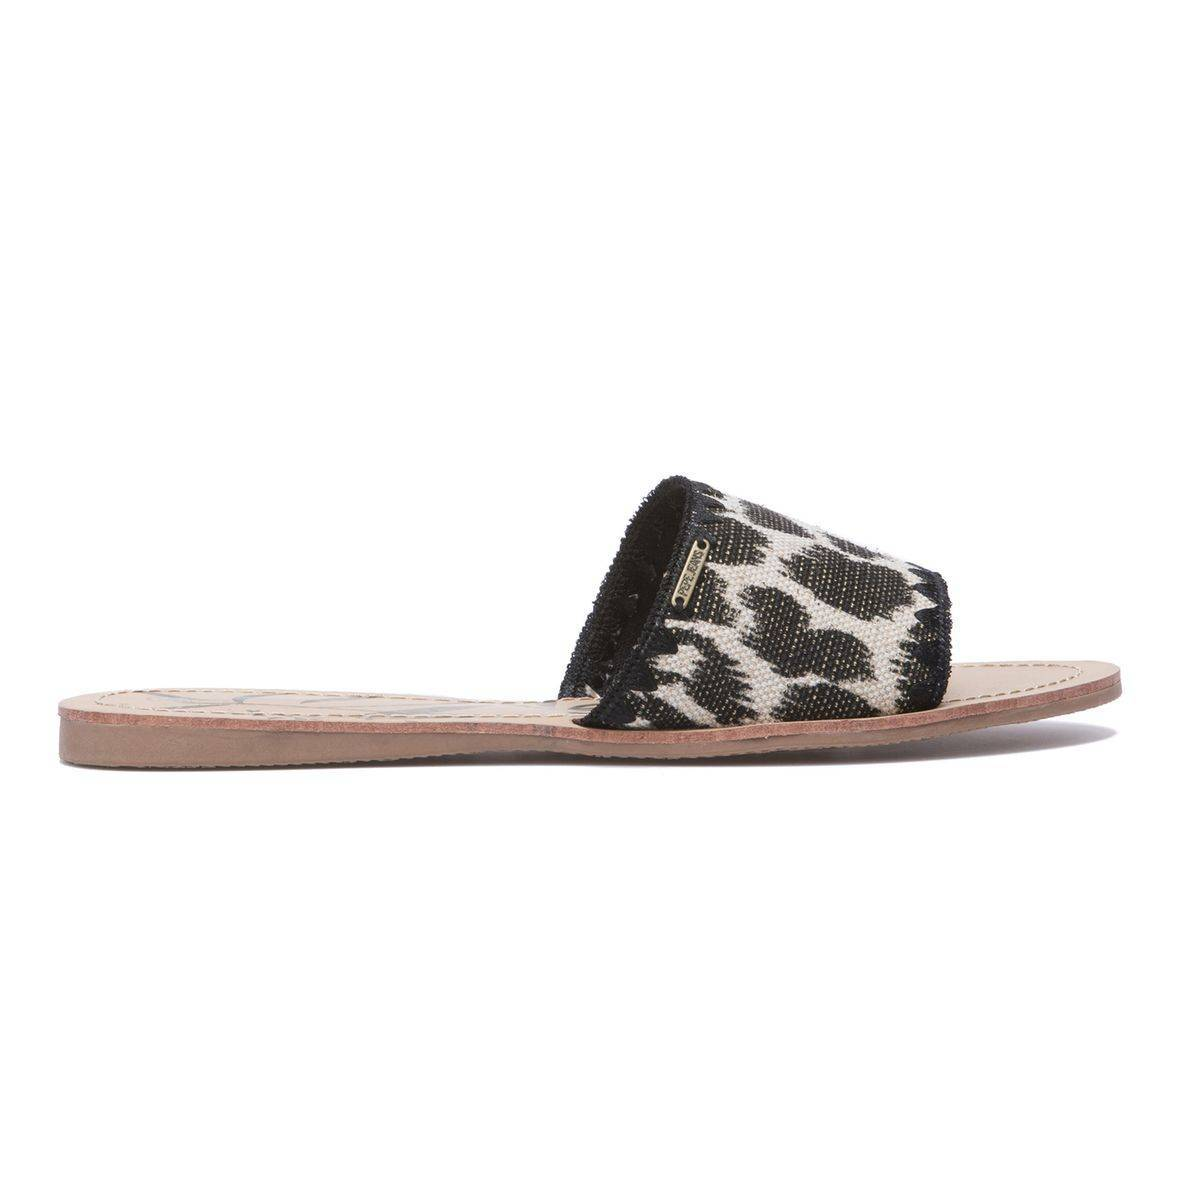 Pepe Jeans Mules Munch Sabana - PEPE JEANS